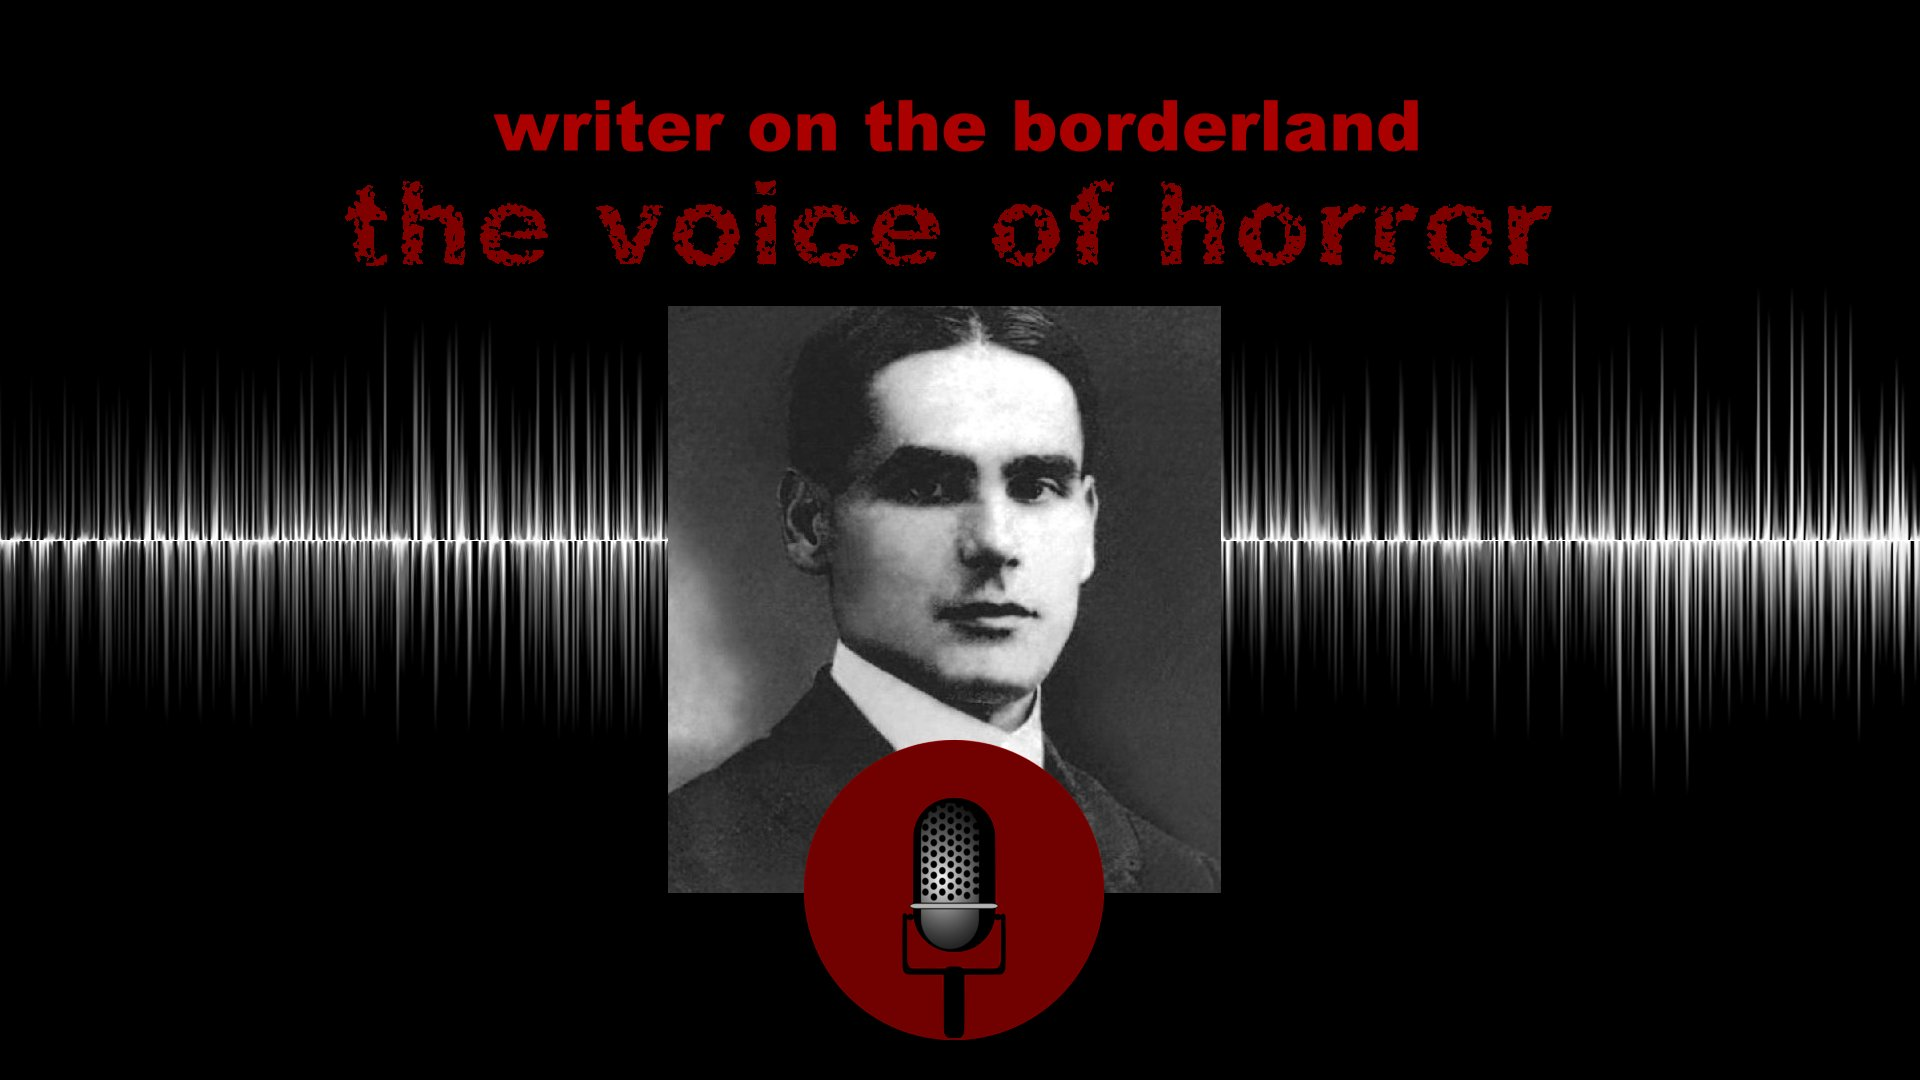 The Writer on the Borderland 2: The Voice of Horror - greydogtales